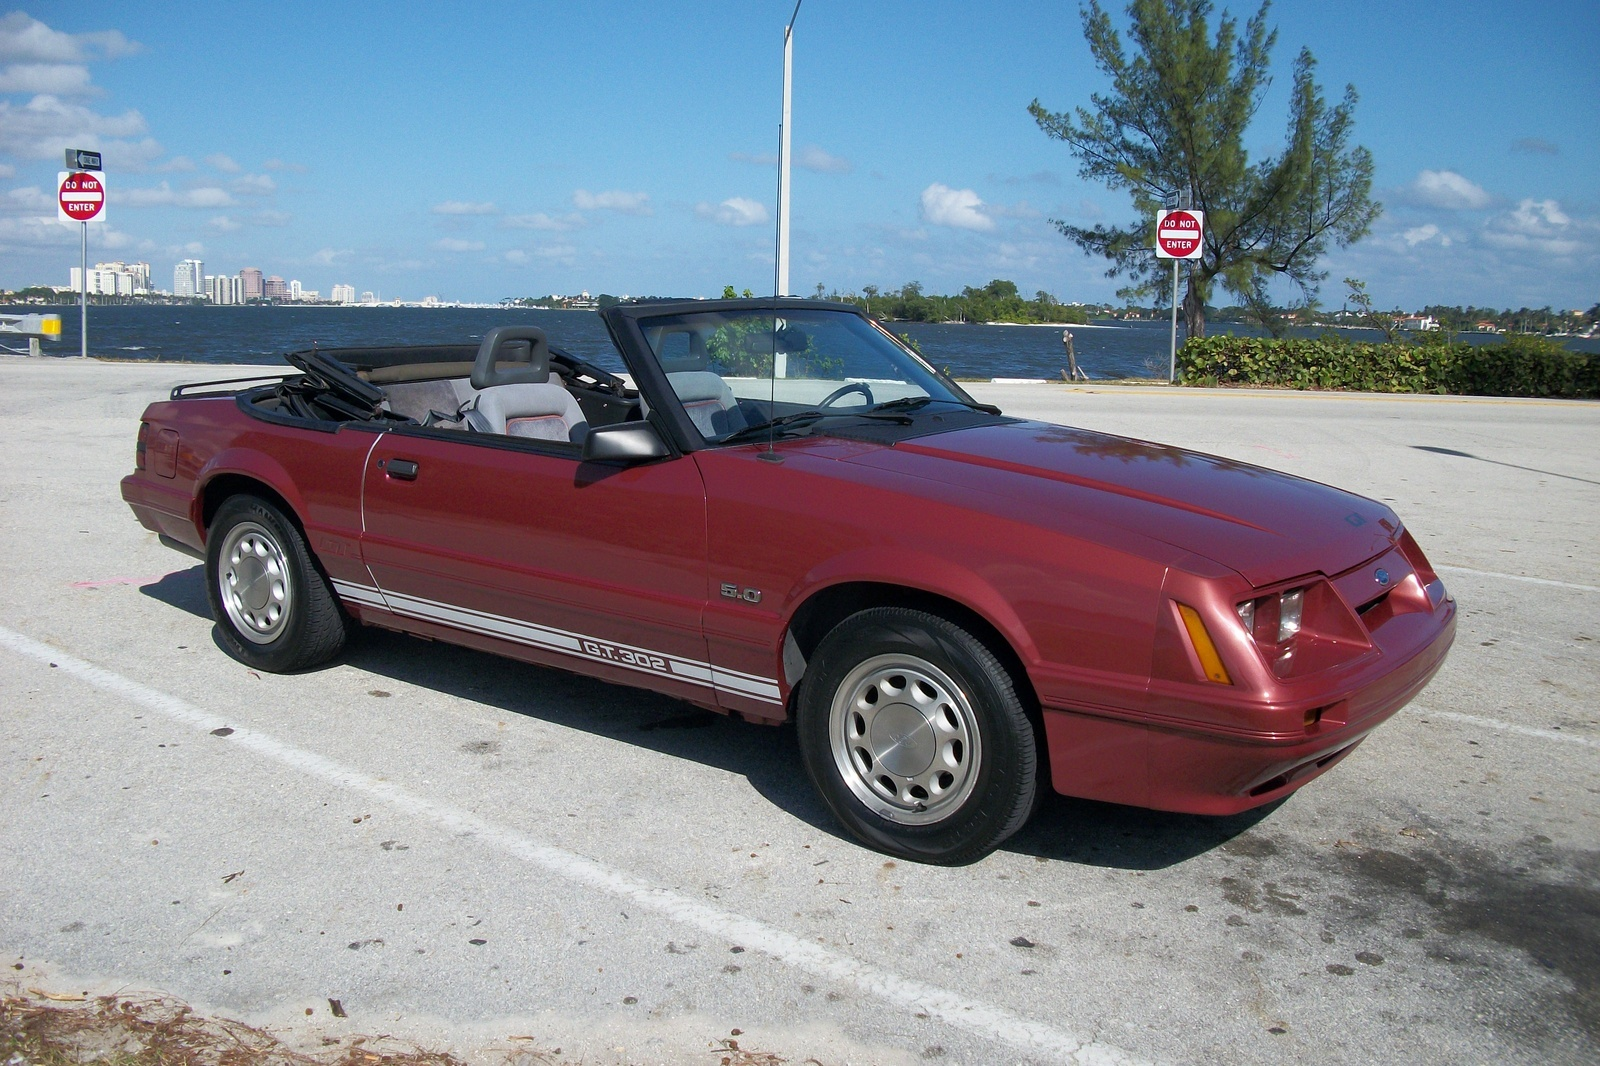 Ford Mustang Questions - 1986 GT: Engine missing or cutting